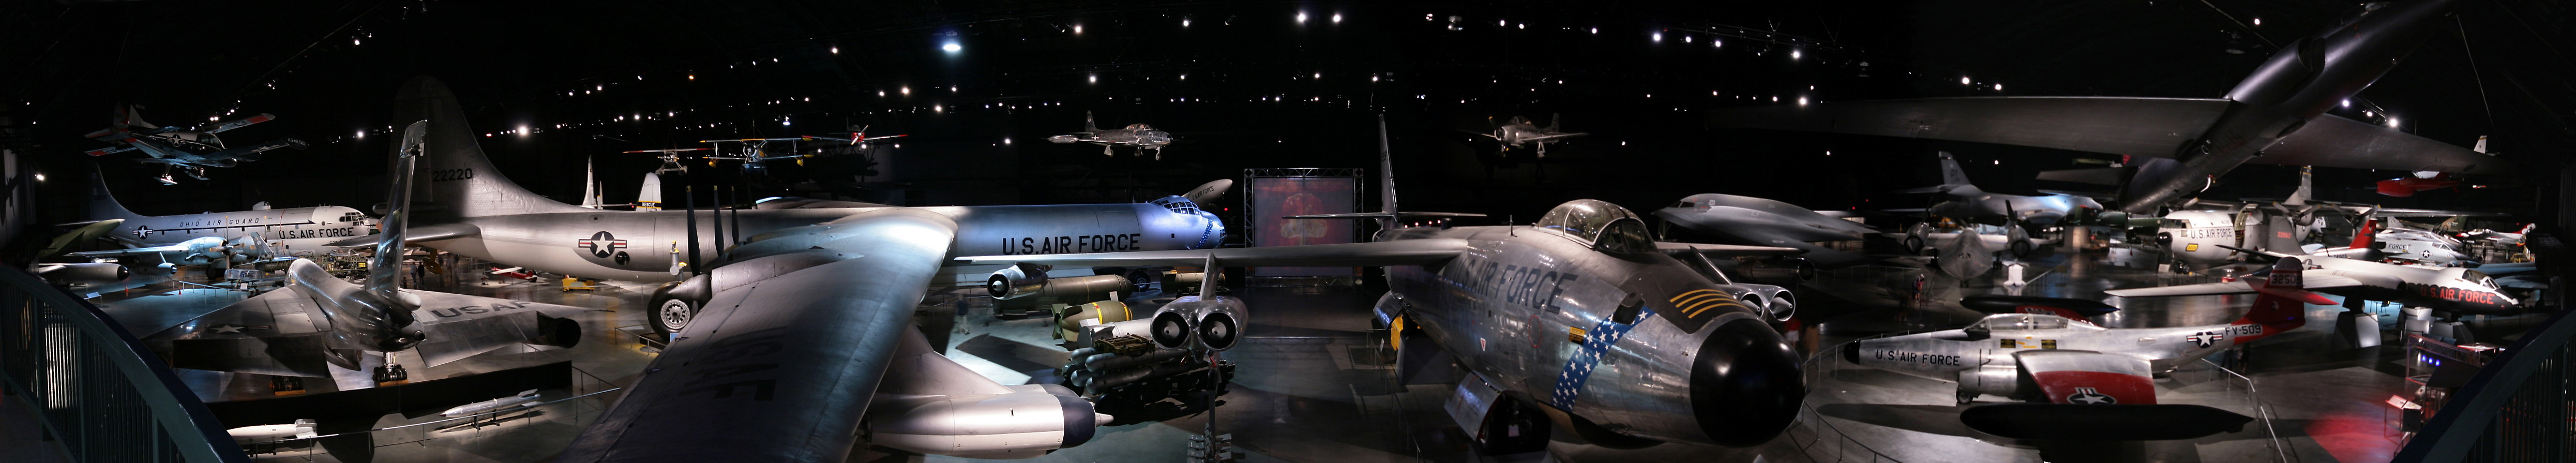 Panorama of the Cold War exhibit